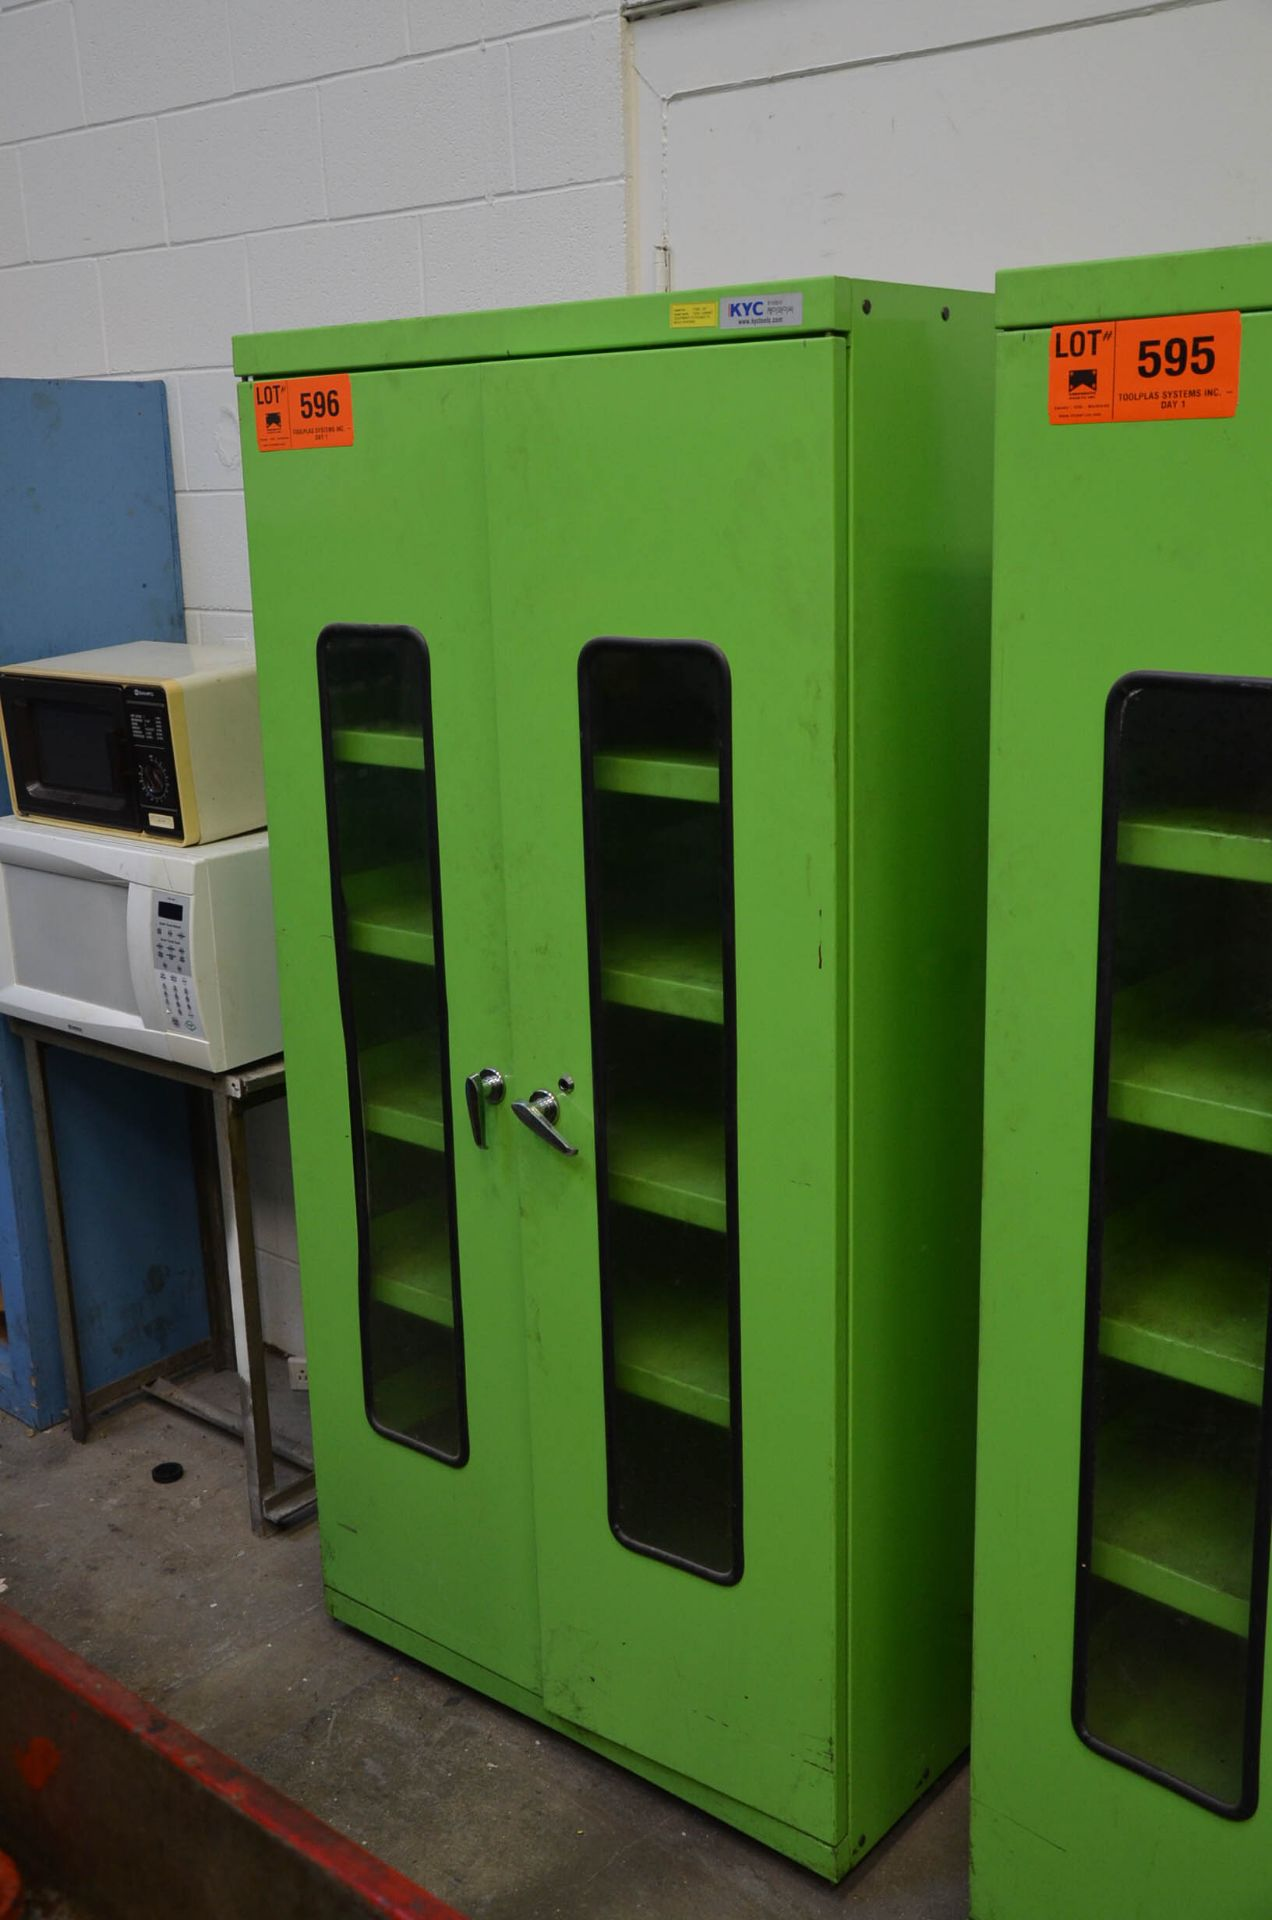 LOT/ CABINET WITH CONTENTS - PARTS AND CONSUMABLES